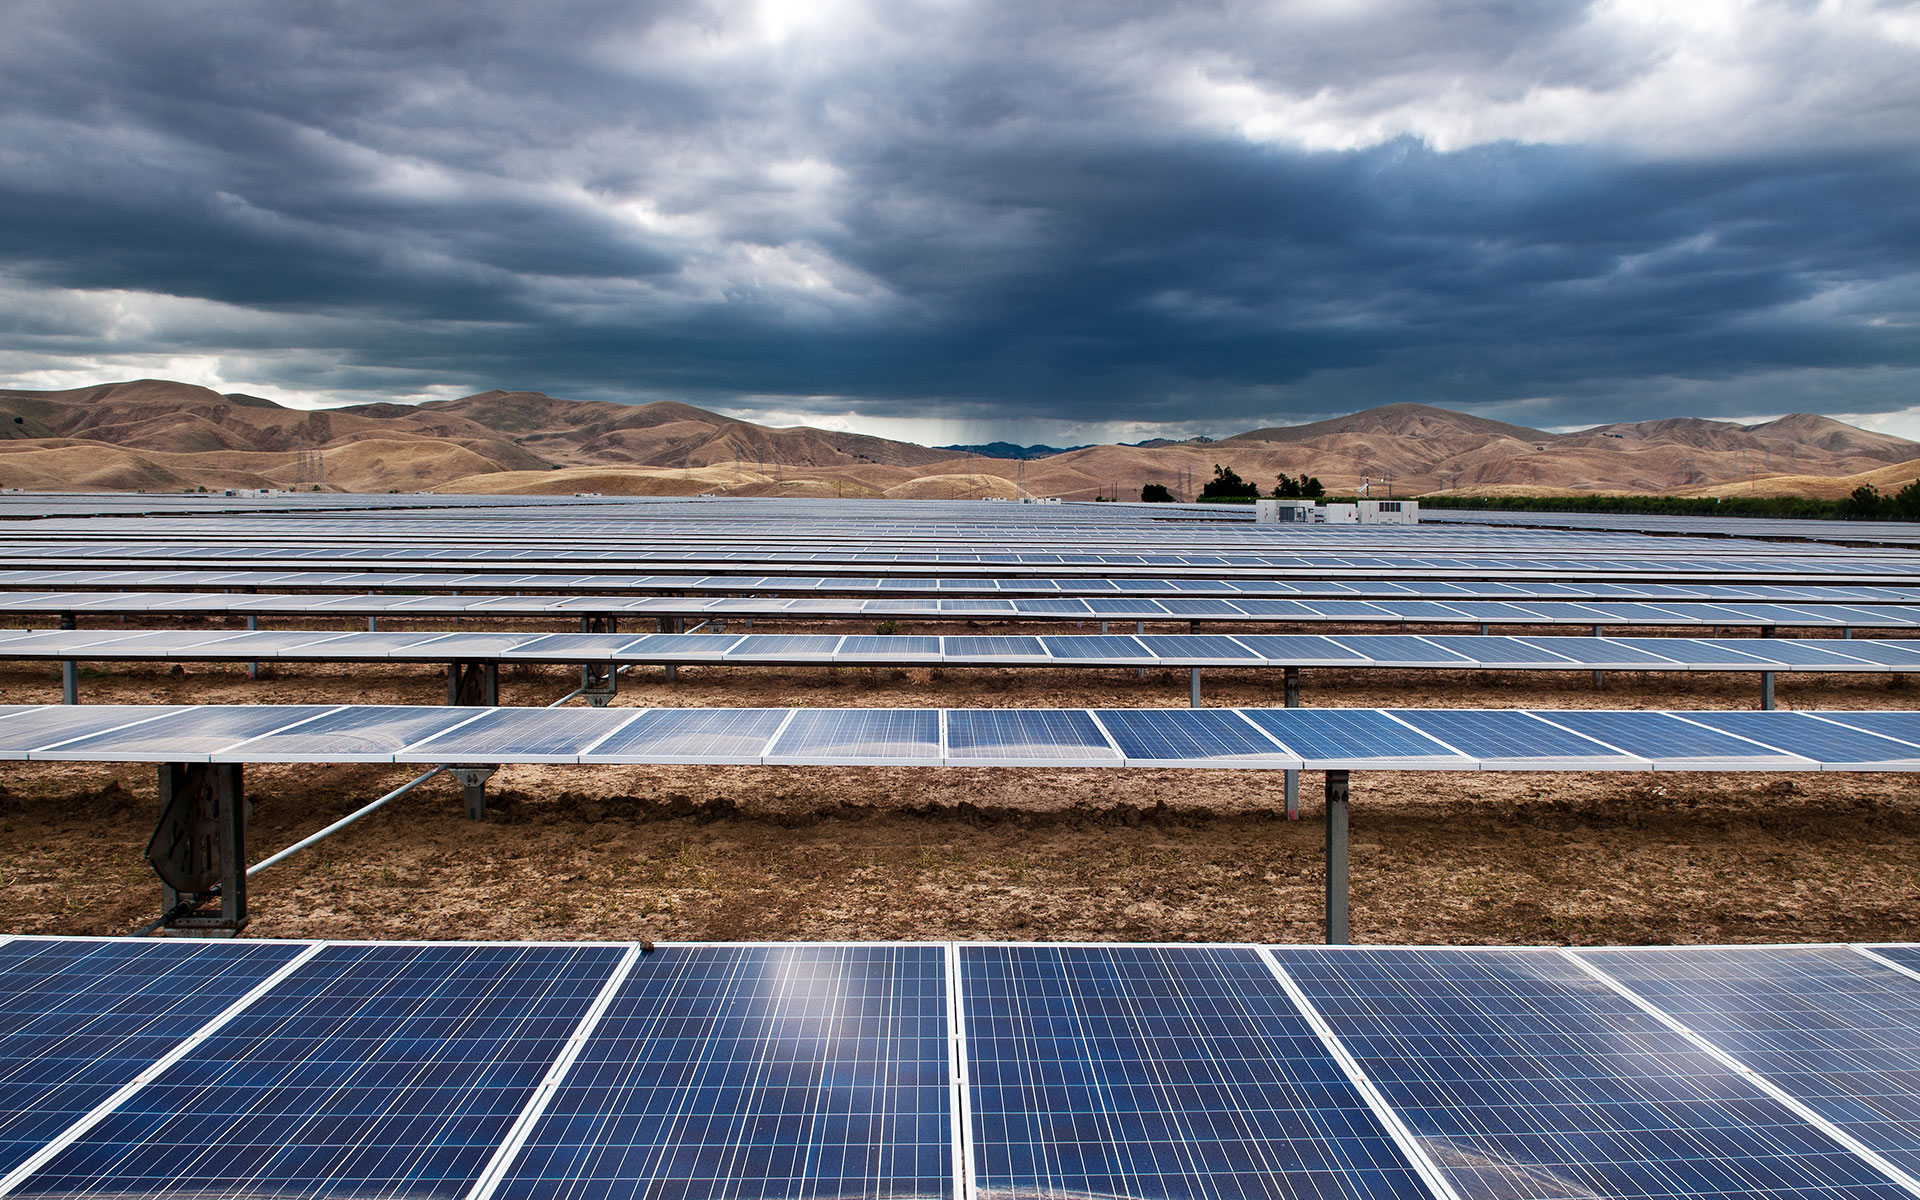 Solar panel field with cloudy sky and hills in the horizon